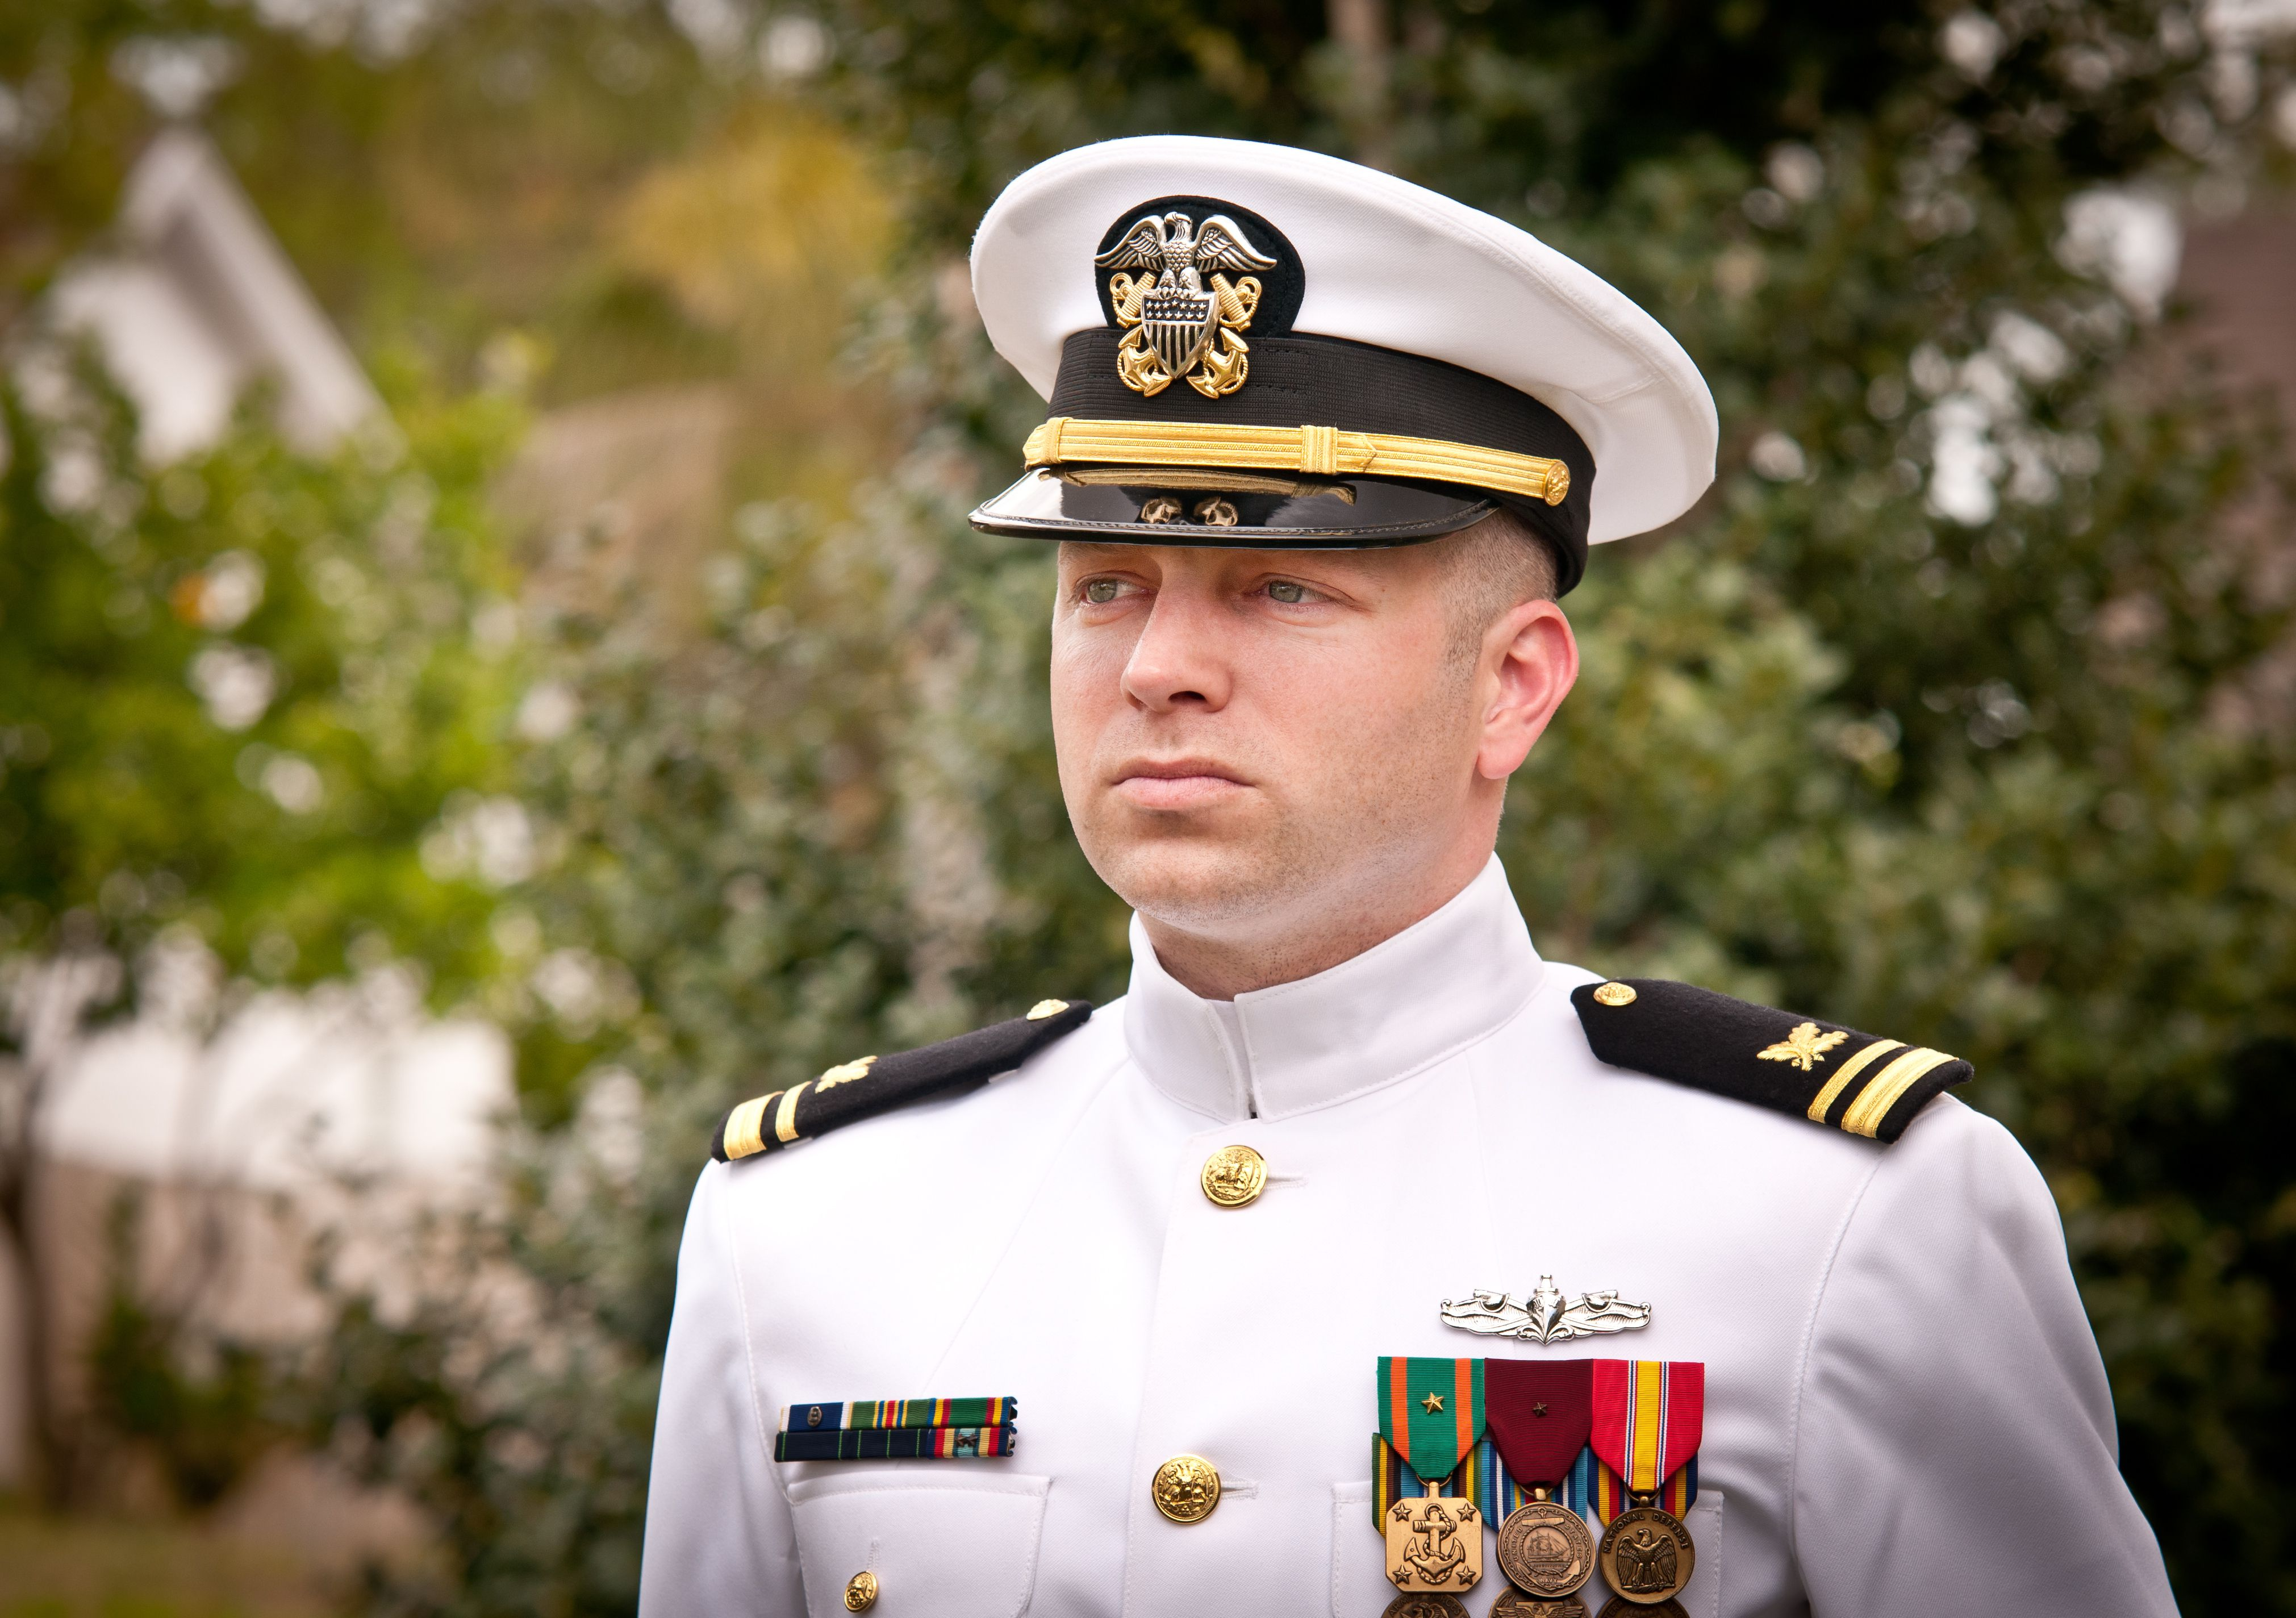 Navy Officer Promotions: How You Can Rise In Naval Rank